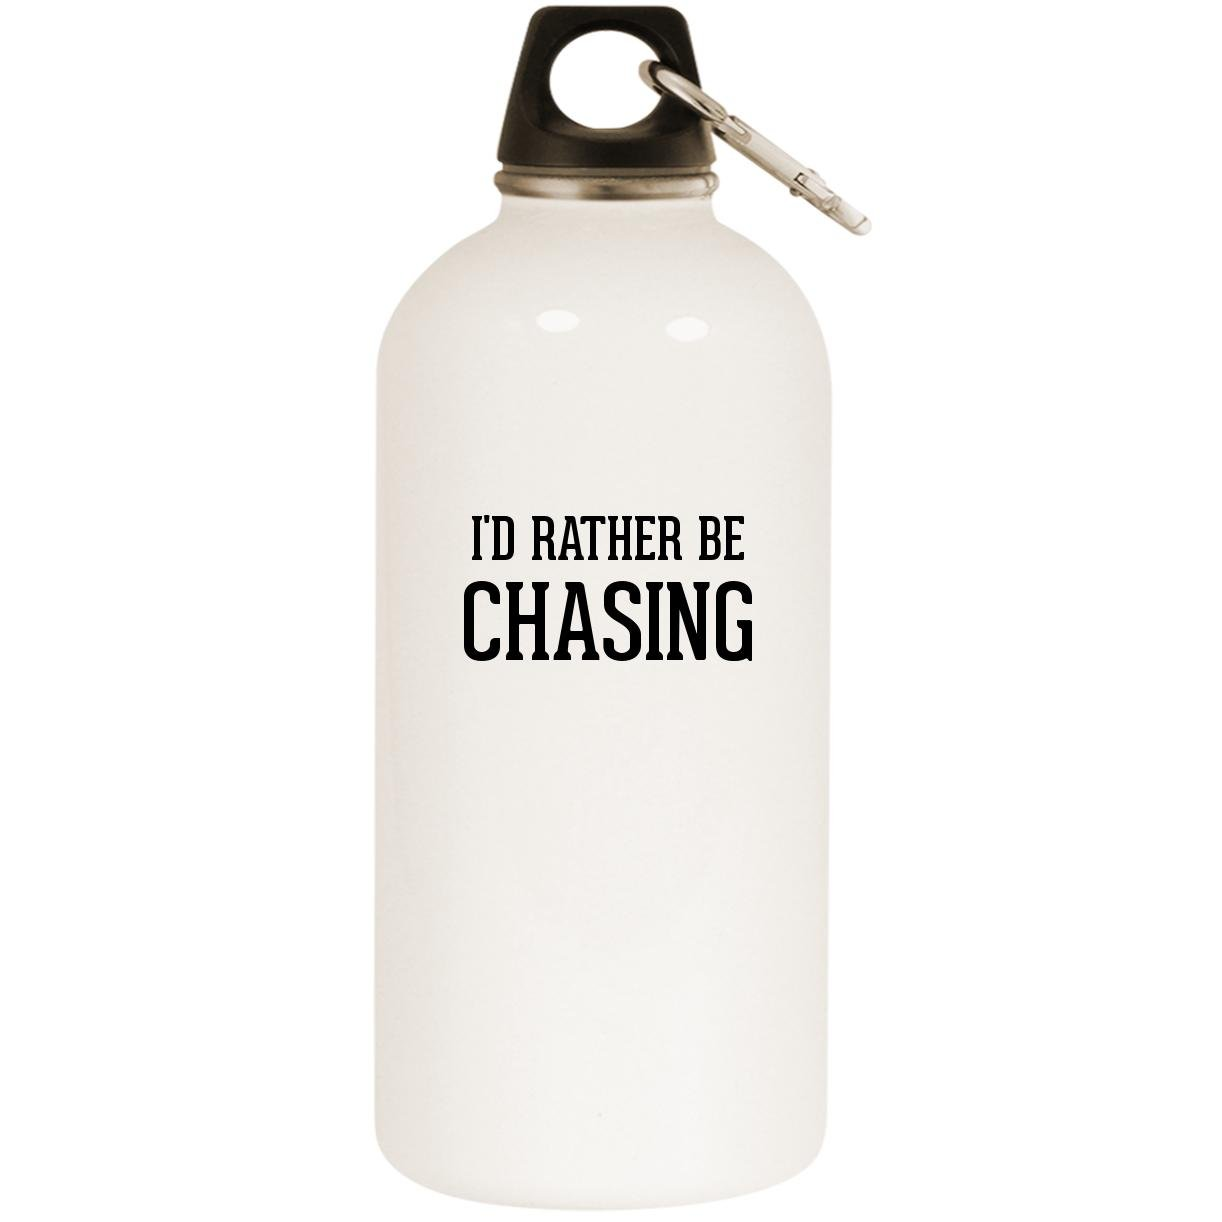 I'd Rather Be CHASING - White 20oz Stainless Steel Water Bottle with Carabiner